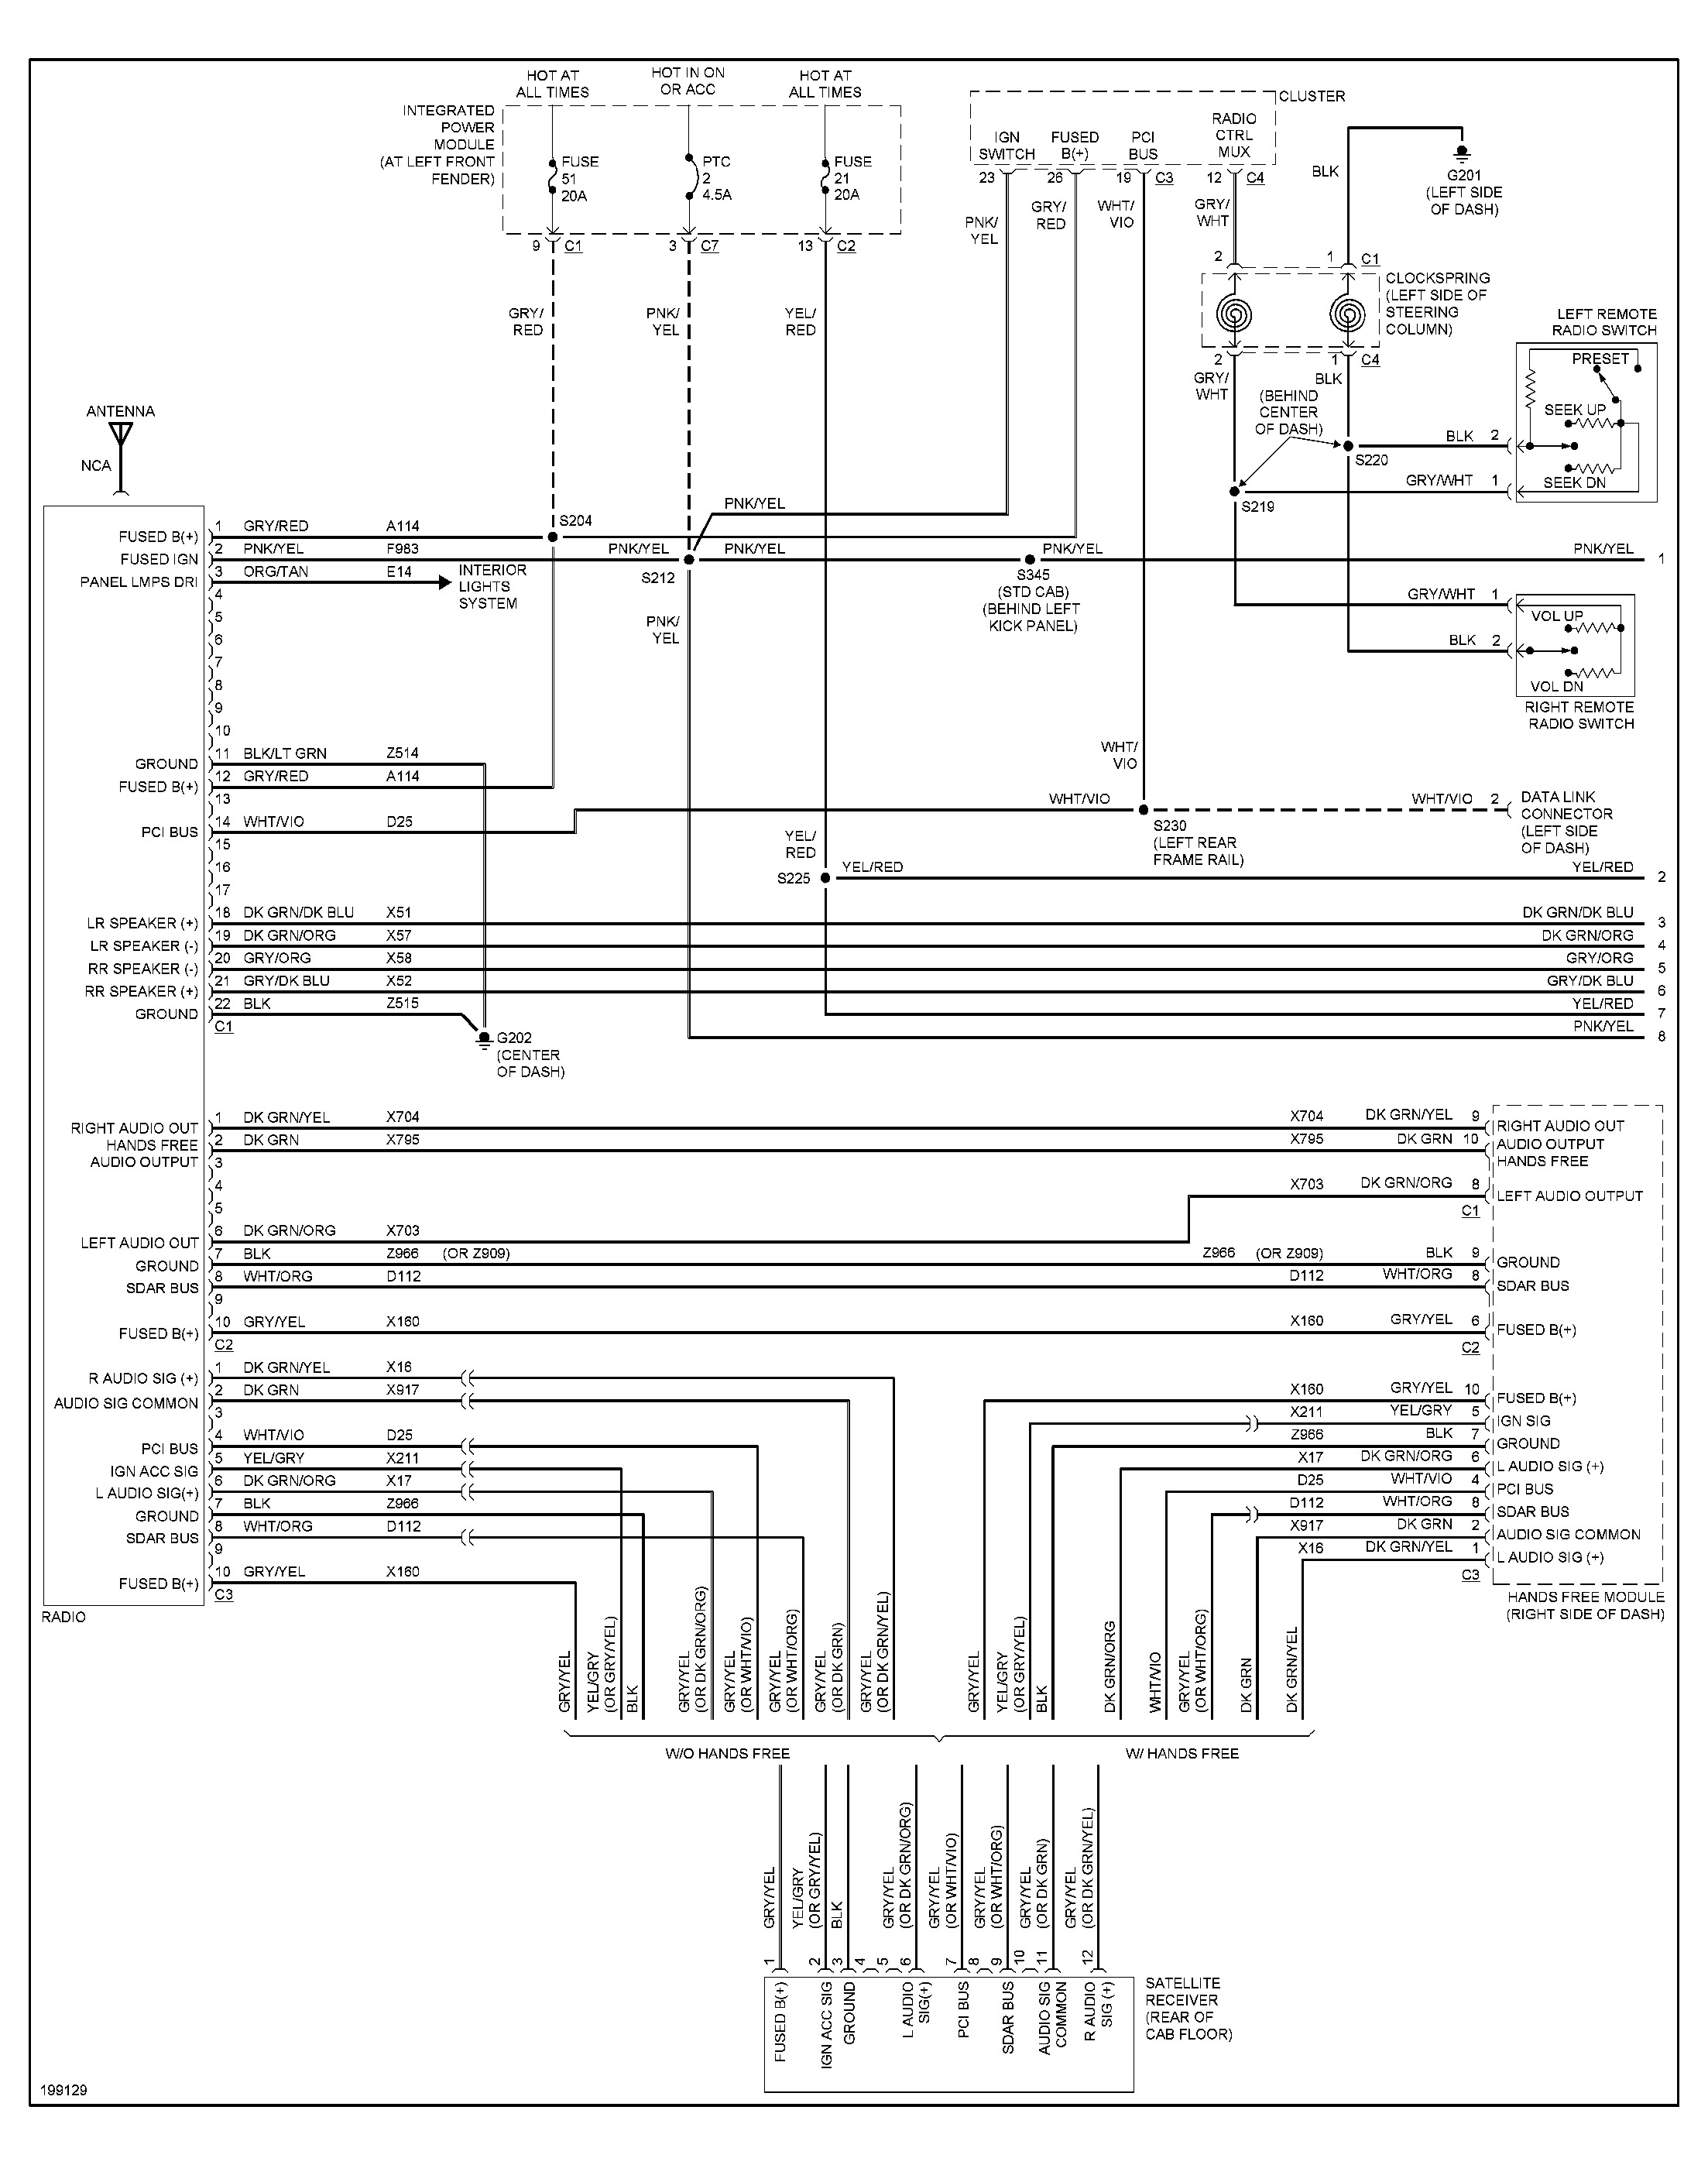 1999 Flhtcui Wiring Diagram Snatch Block Diagrams Wiring